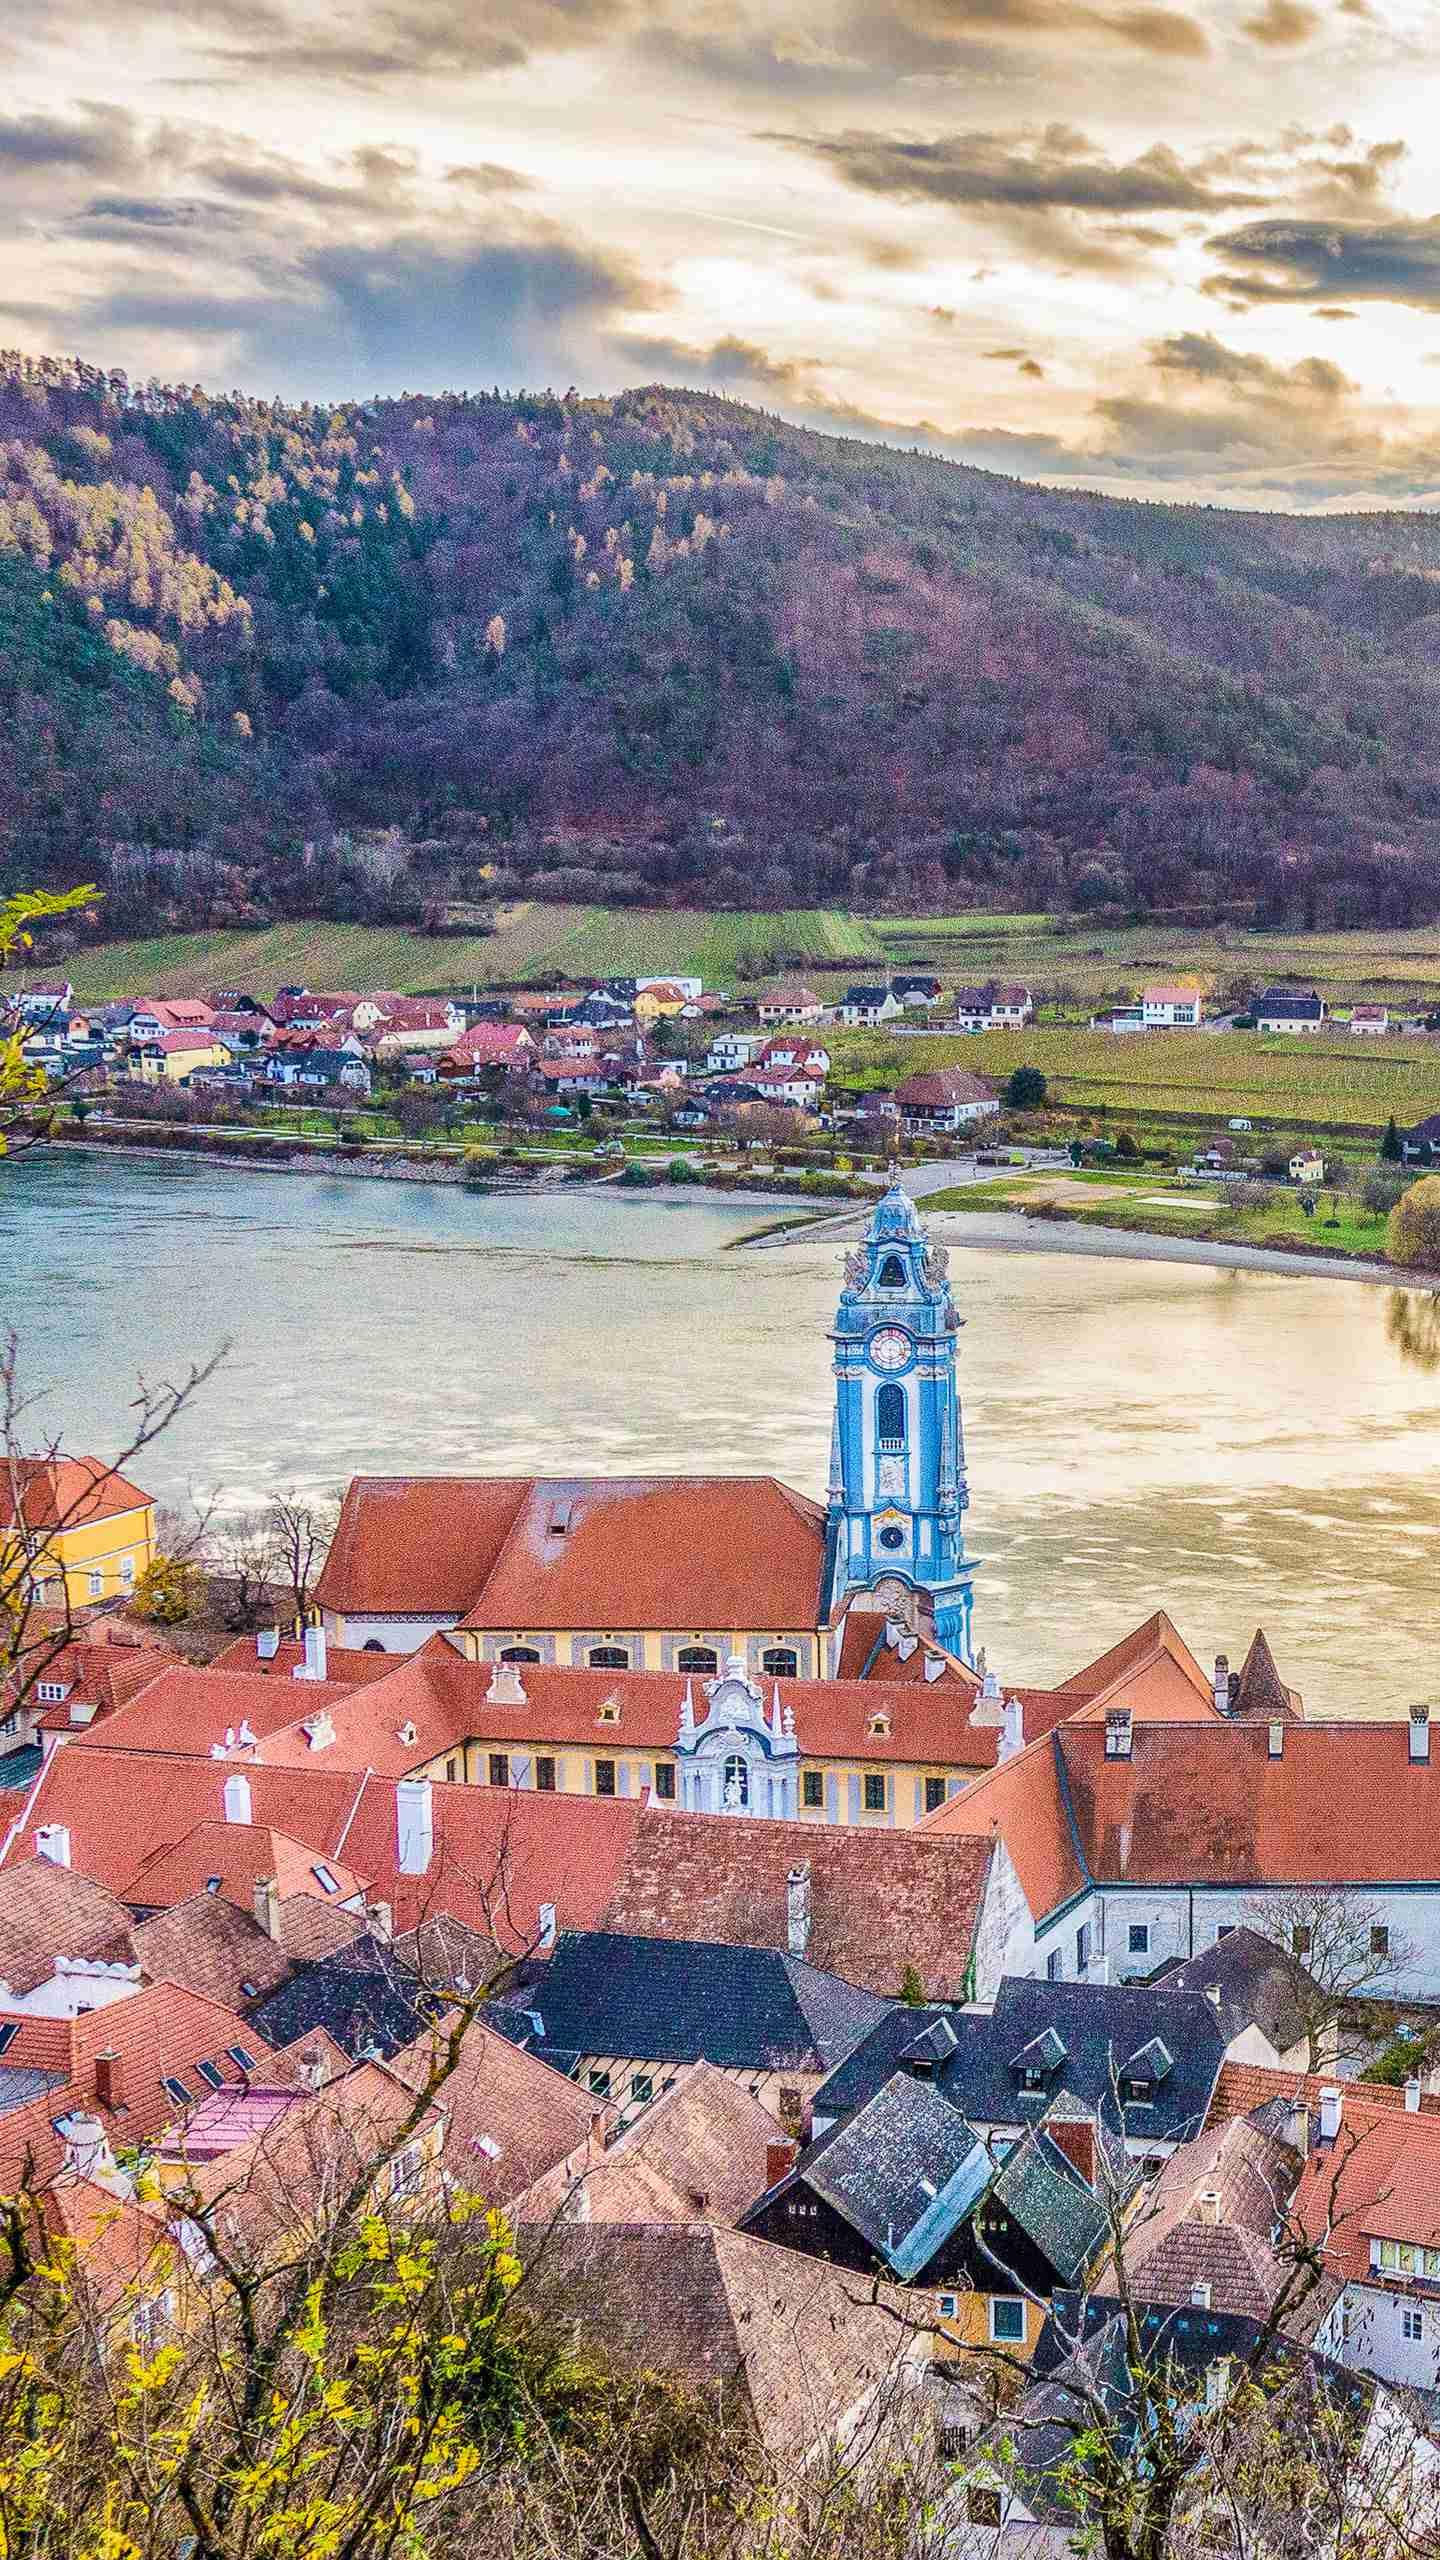 The town of Wachau Valley. The Wachau Valley has some of the world's most beautiful riverside scenery, and the picturesque towns have made this place a charming romantic.